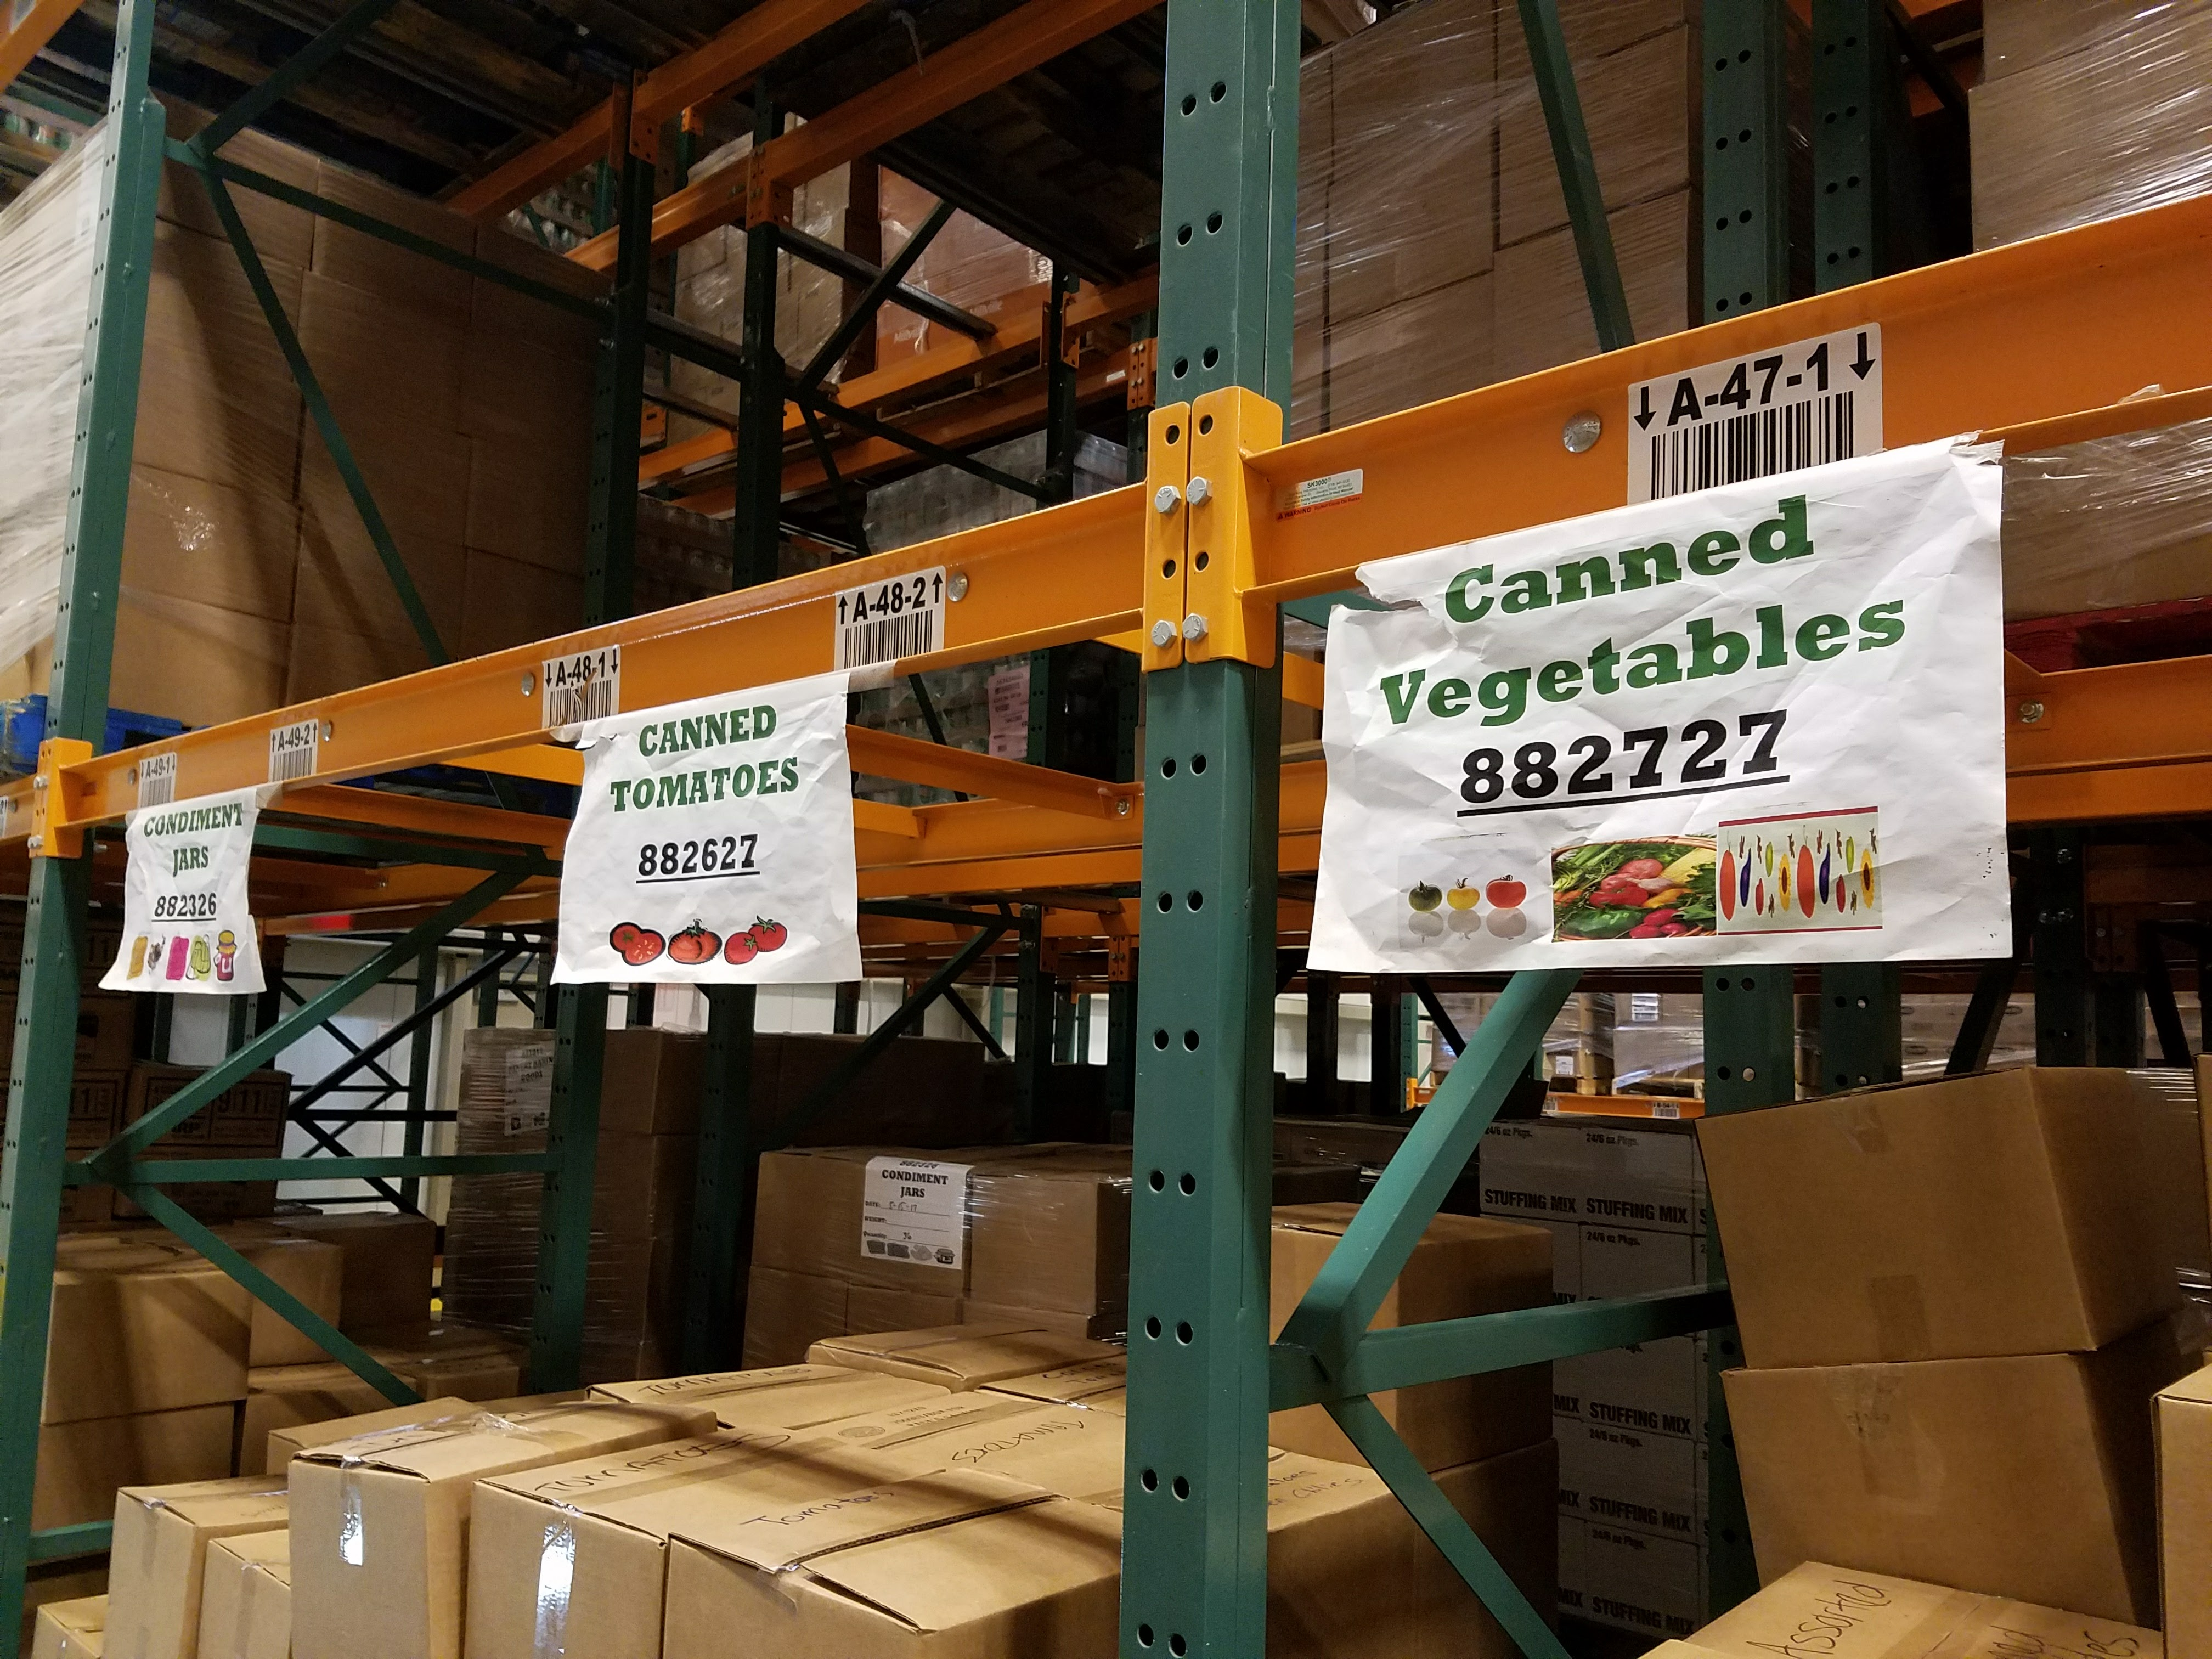 Canned goods are sorted and labeld for nutritional value in CAFB's impressive warehouse.